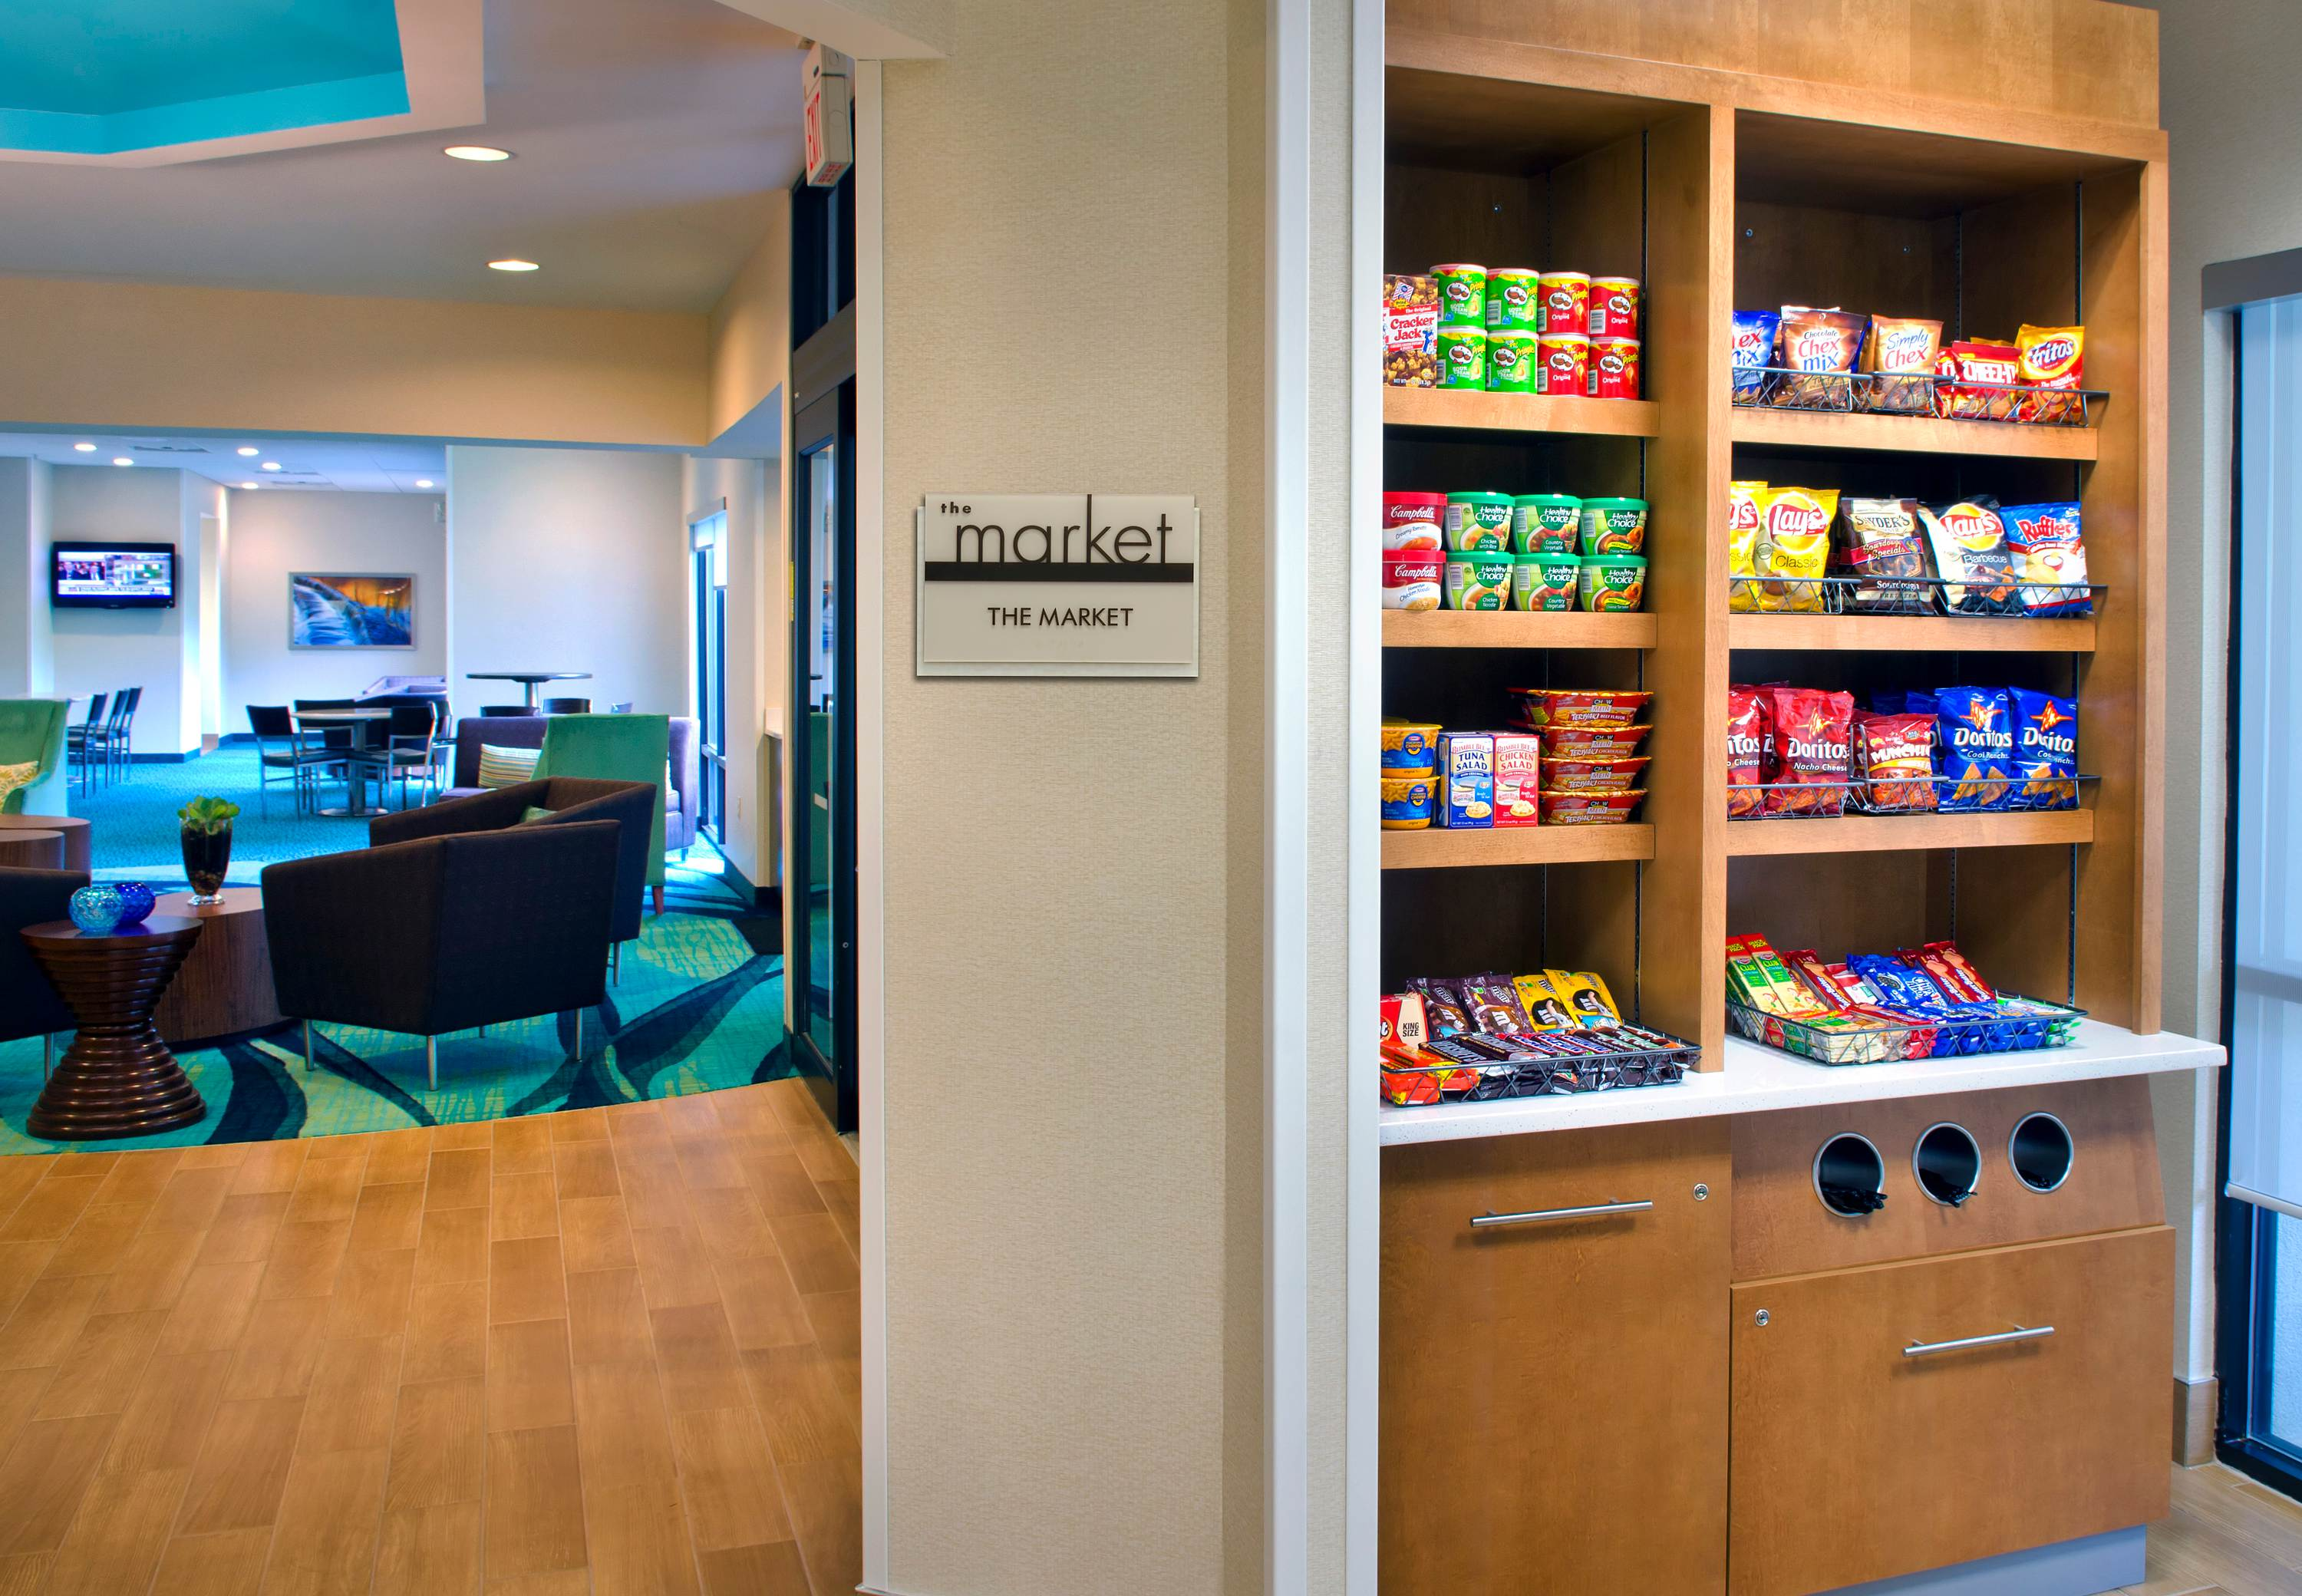 SpringHill Suites by Marriott Boston Andover image 10